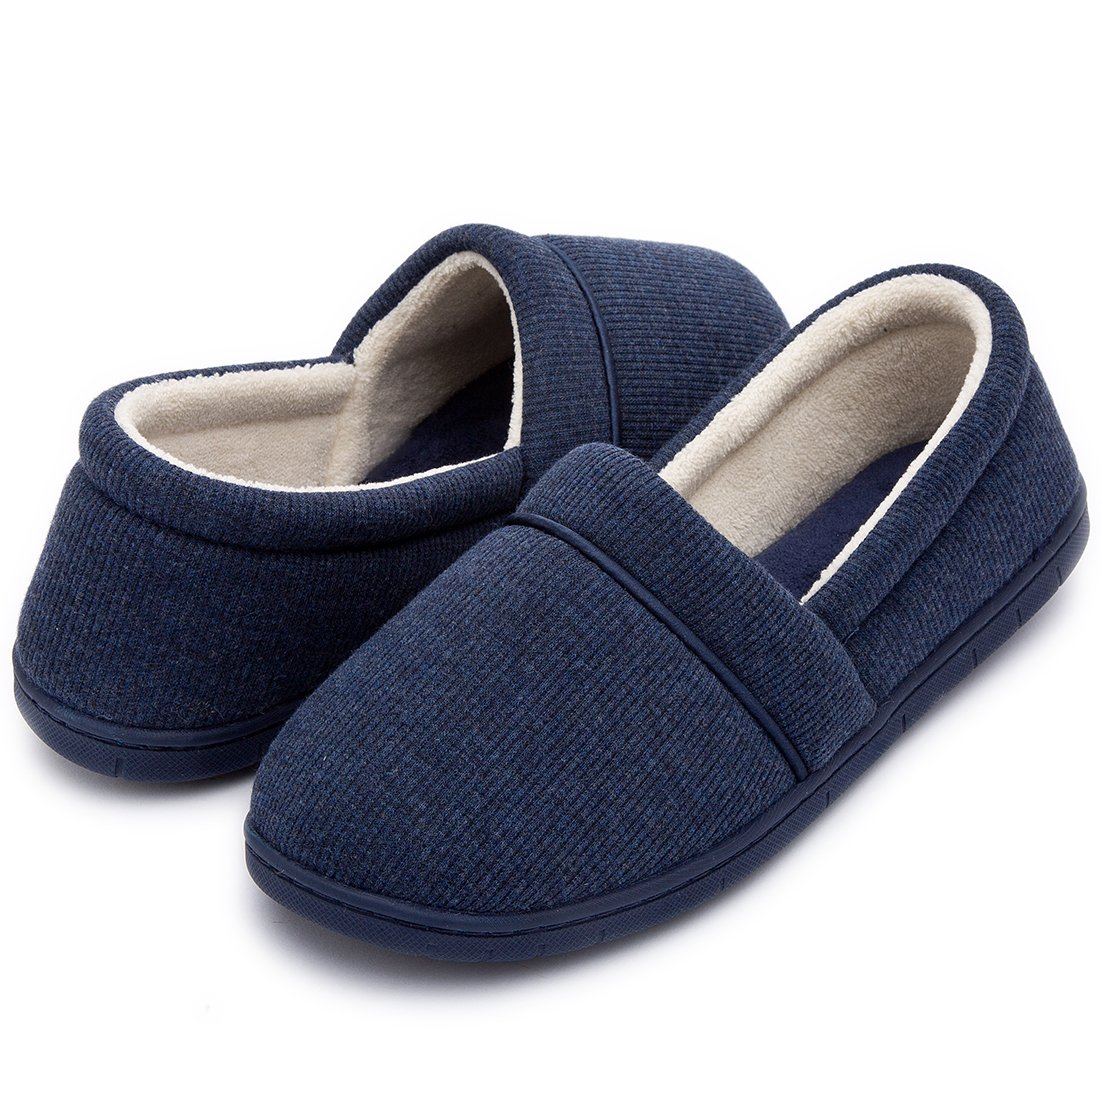 ULTRAIDEAS Women's Velvet Memory Foam Closed Back Slippers Lightweight Anti-Slid Embroidery Ballerina House/Office Shoes (Medium / 7-8 B(M) US, Navy Blue)